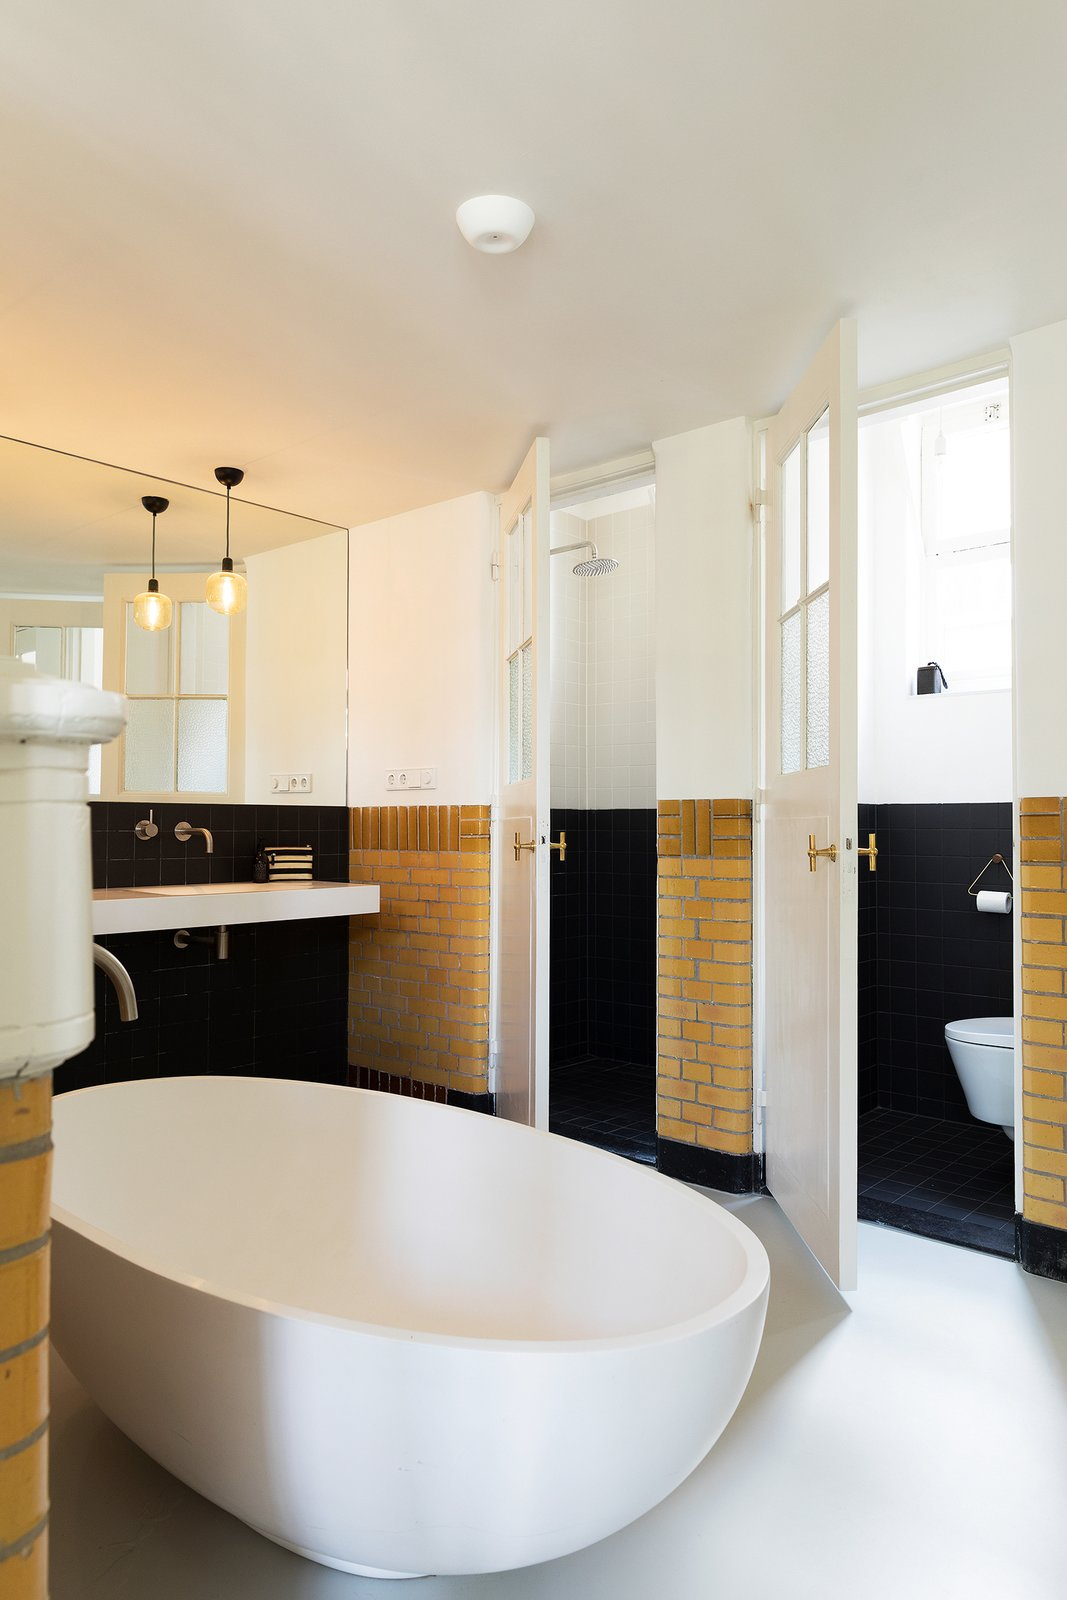 The five original lavatories were updated and integrated into the new bathing area.